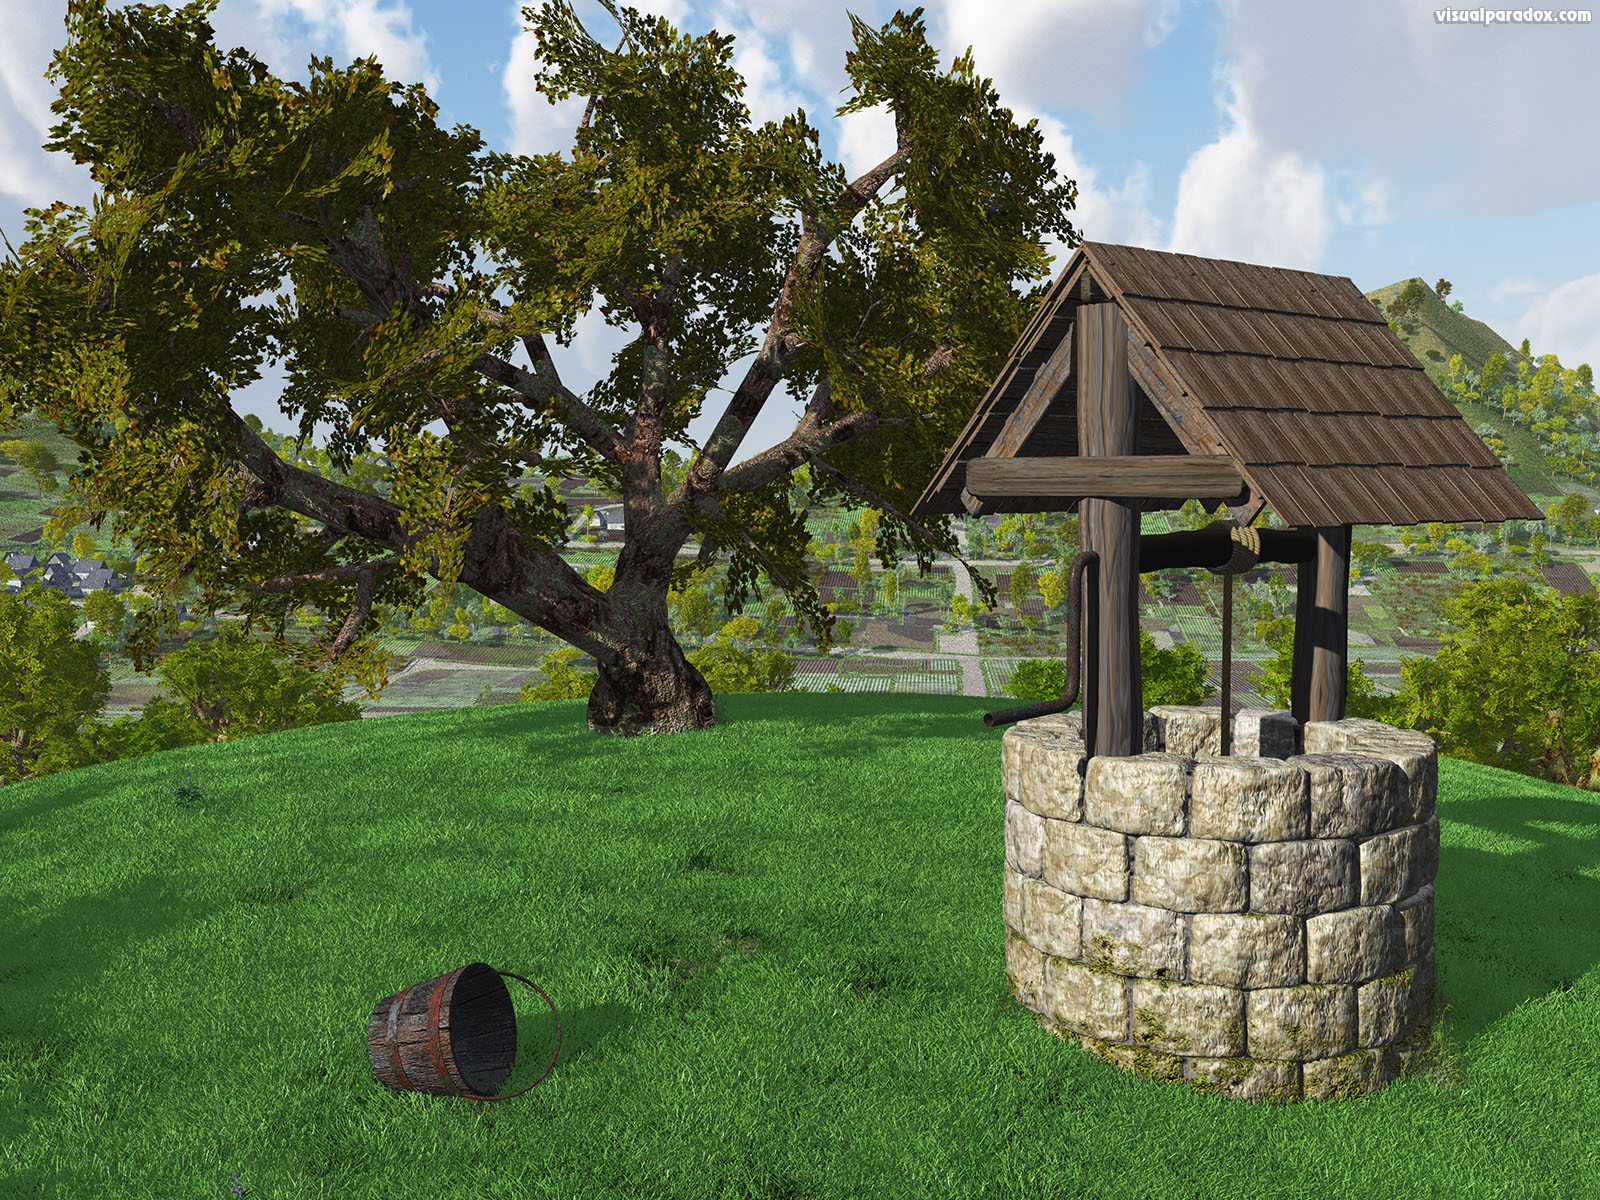 water, well, hole, village, source, bucket, jack and jlll, gnarled tree, grass, hill, idyllic, crank, sunny, day, 3d, wallpaper